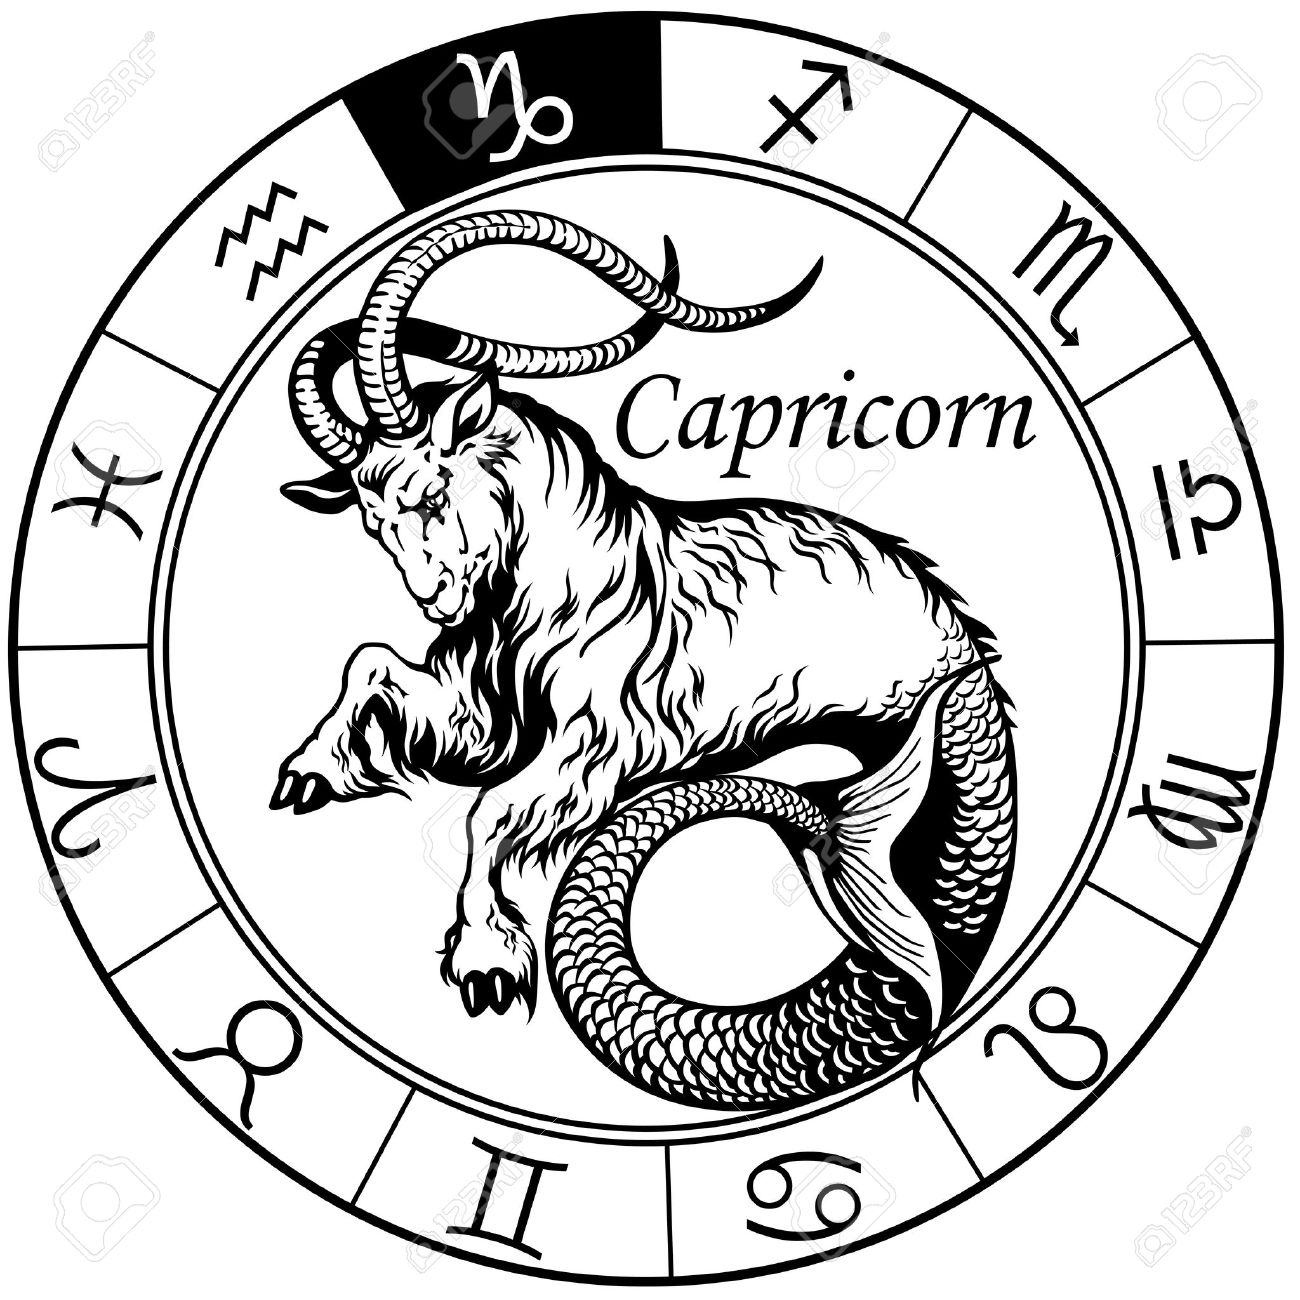 50 Best Capricorn Tattoo Designs With Meanings For Men & Women